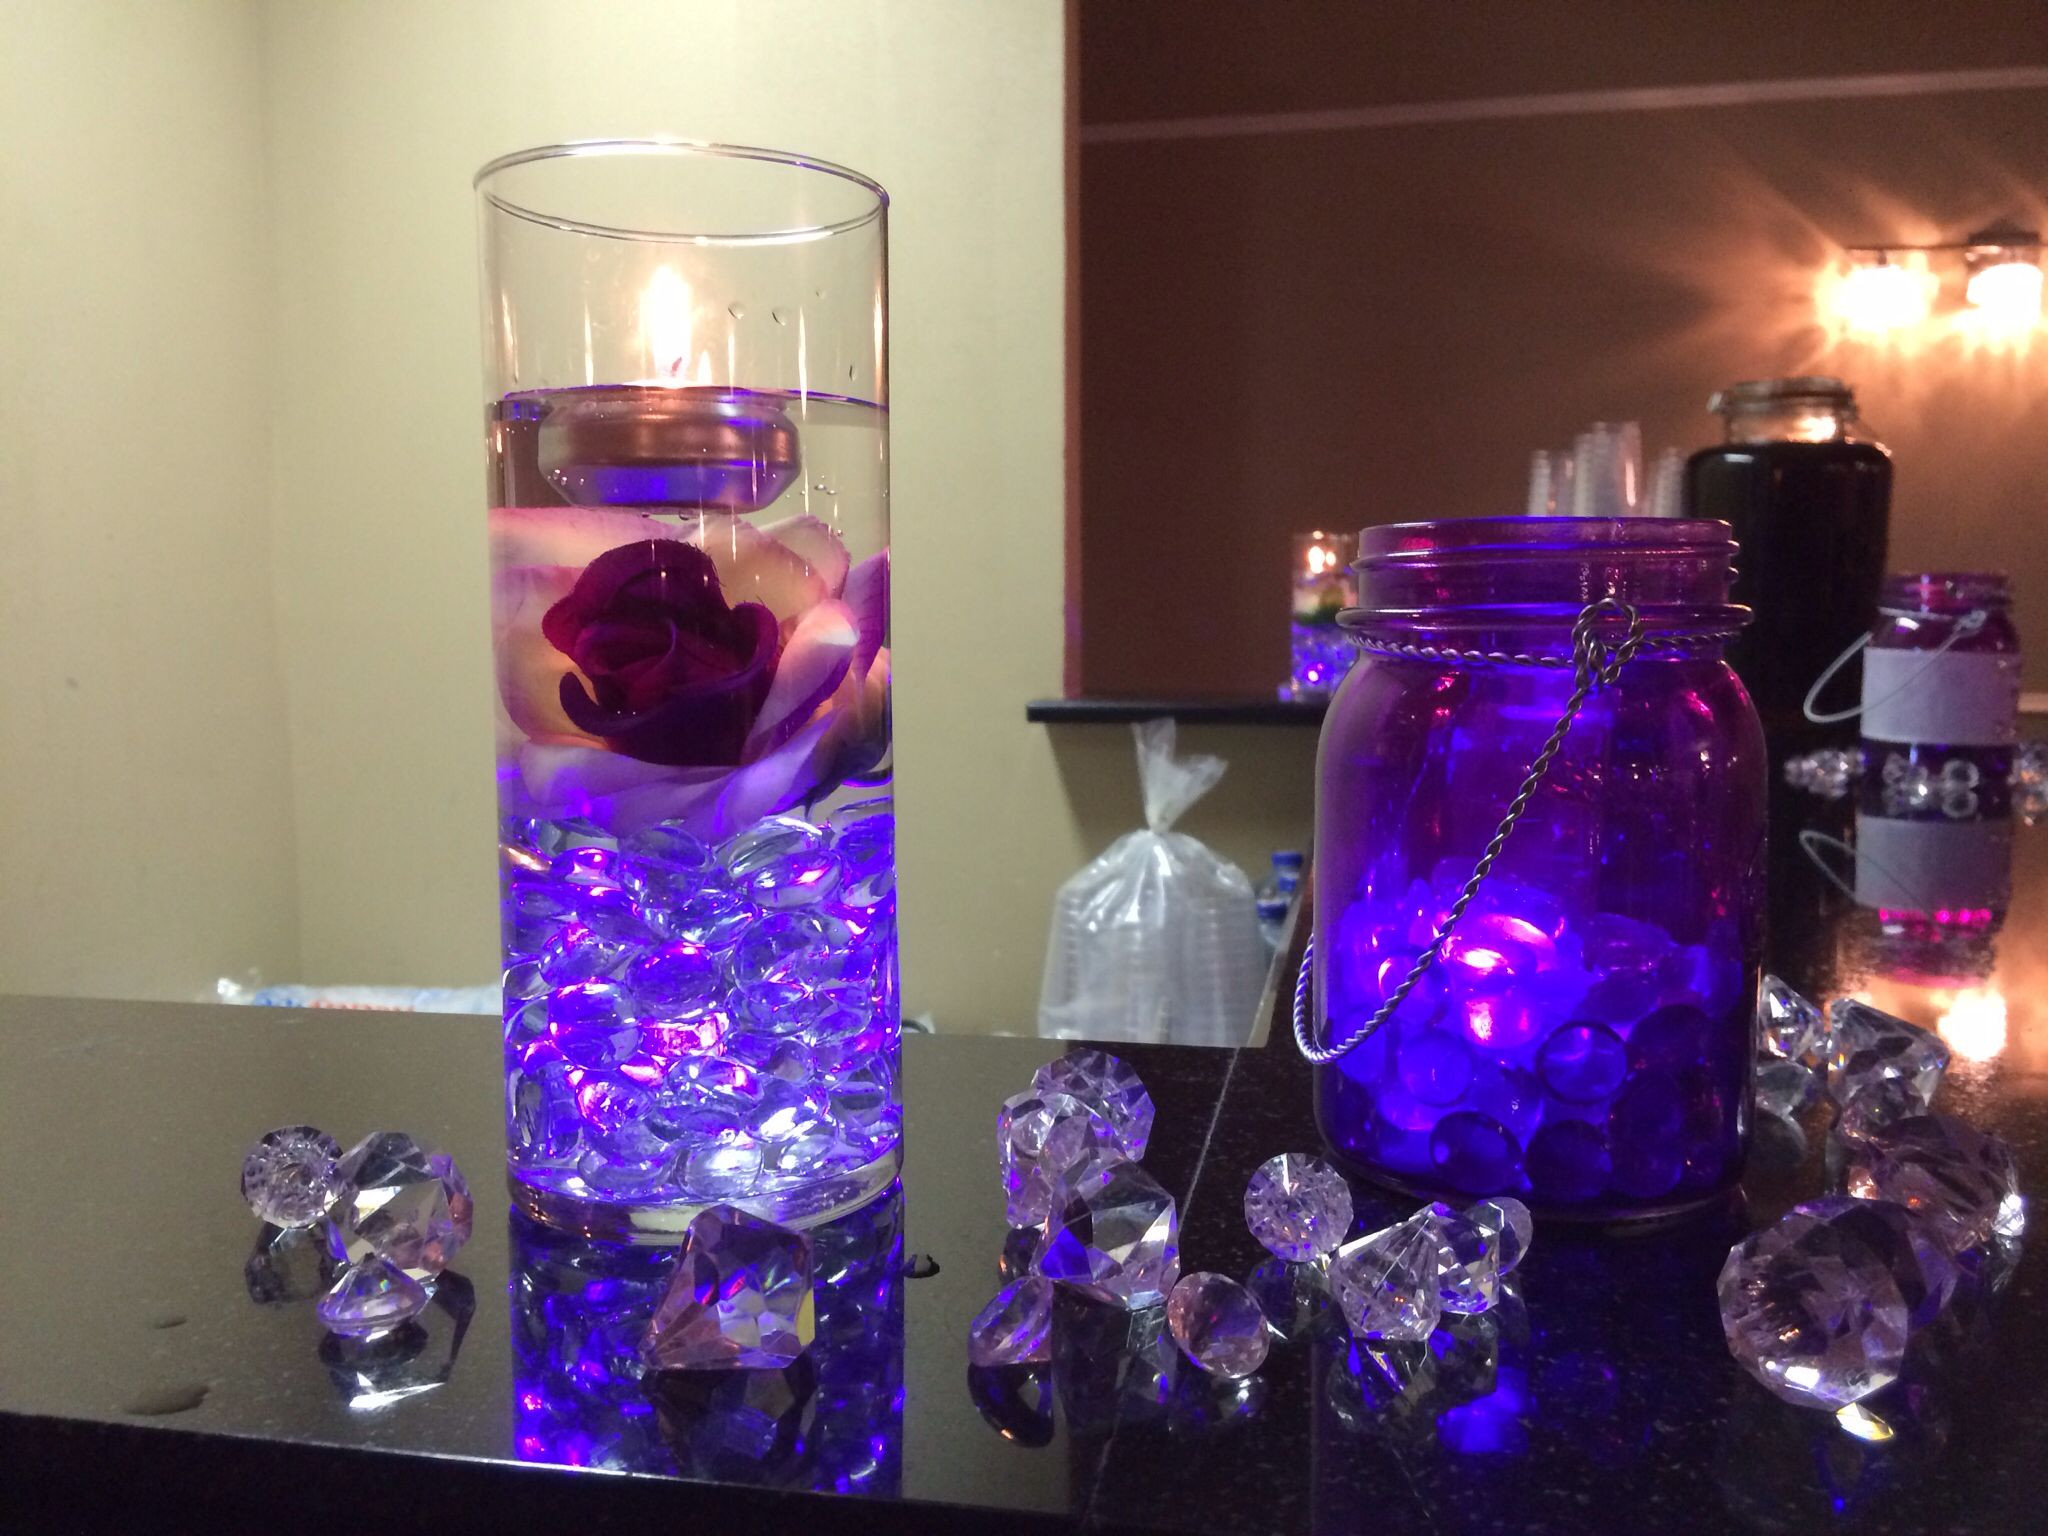 purple glass stones for vases of purple centerpiece with glowing stones submerged flower and with regard to purple centerpiece with glowing stones submerged flower and floating candle purple glowing mason jar centerpiece bowdenwedding bling centerpiece